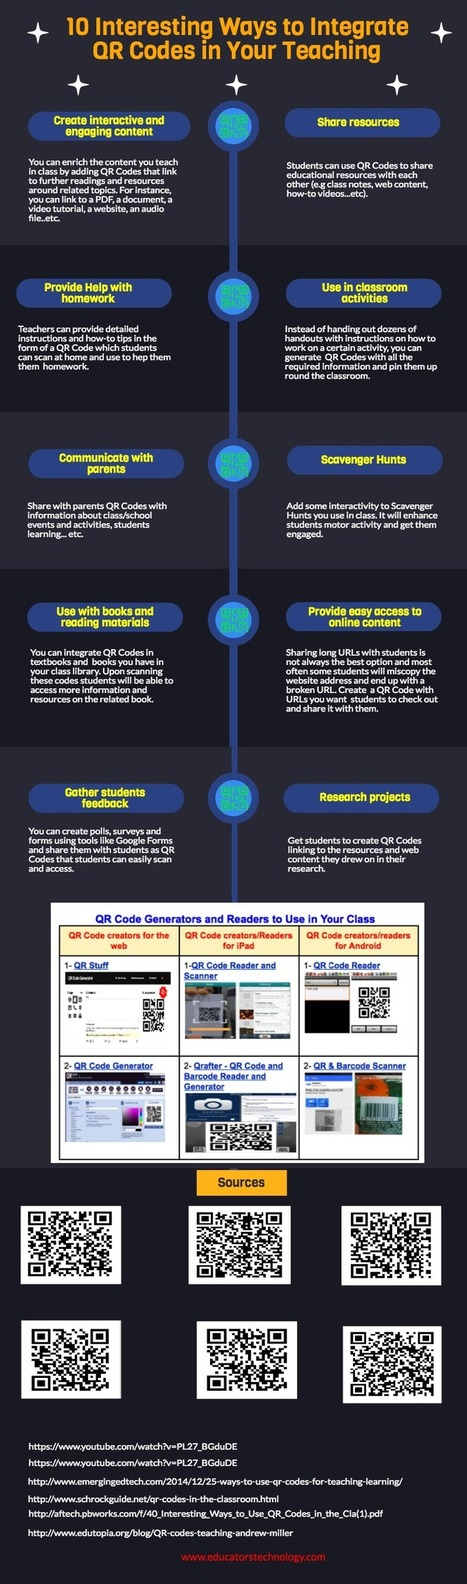 10 Interesting Ways to Integrate QR Codes in Your Teaching ~ Educational Technology and Mobile Learning | E-Learning and Online Teaching | Scoop.it